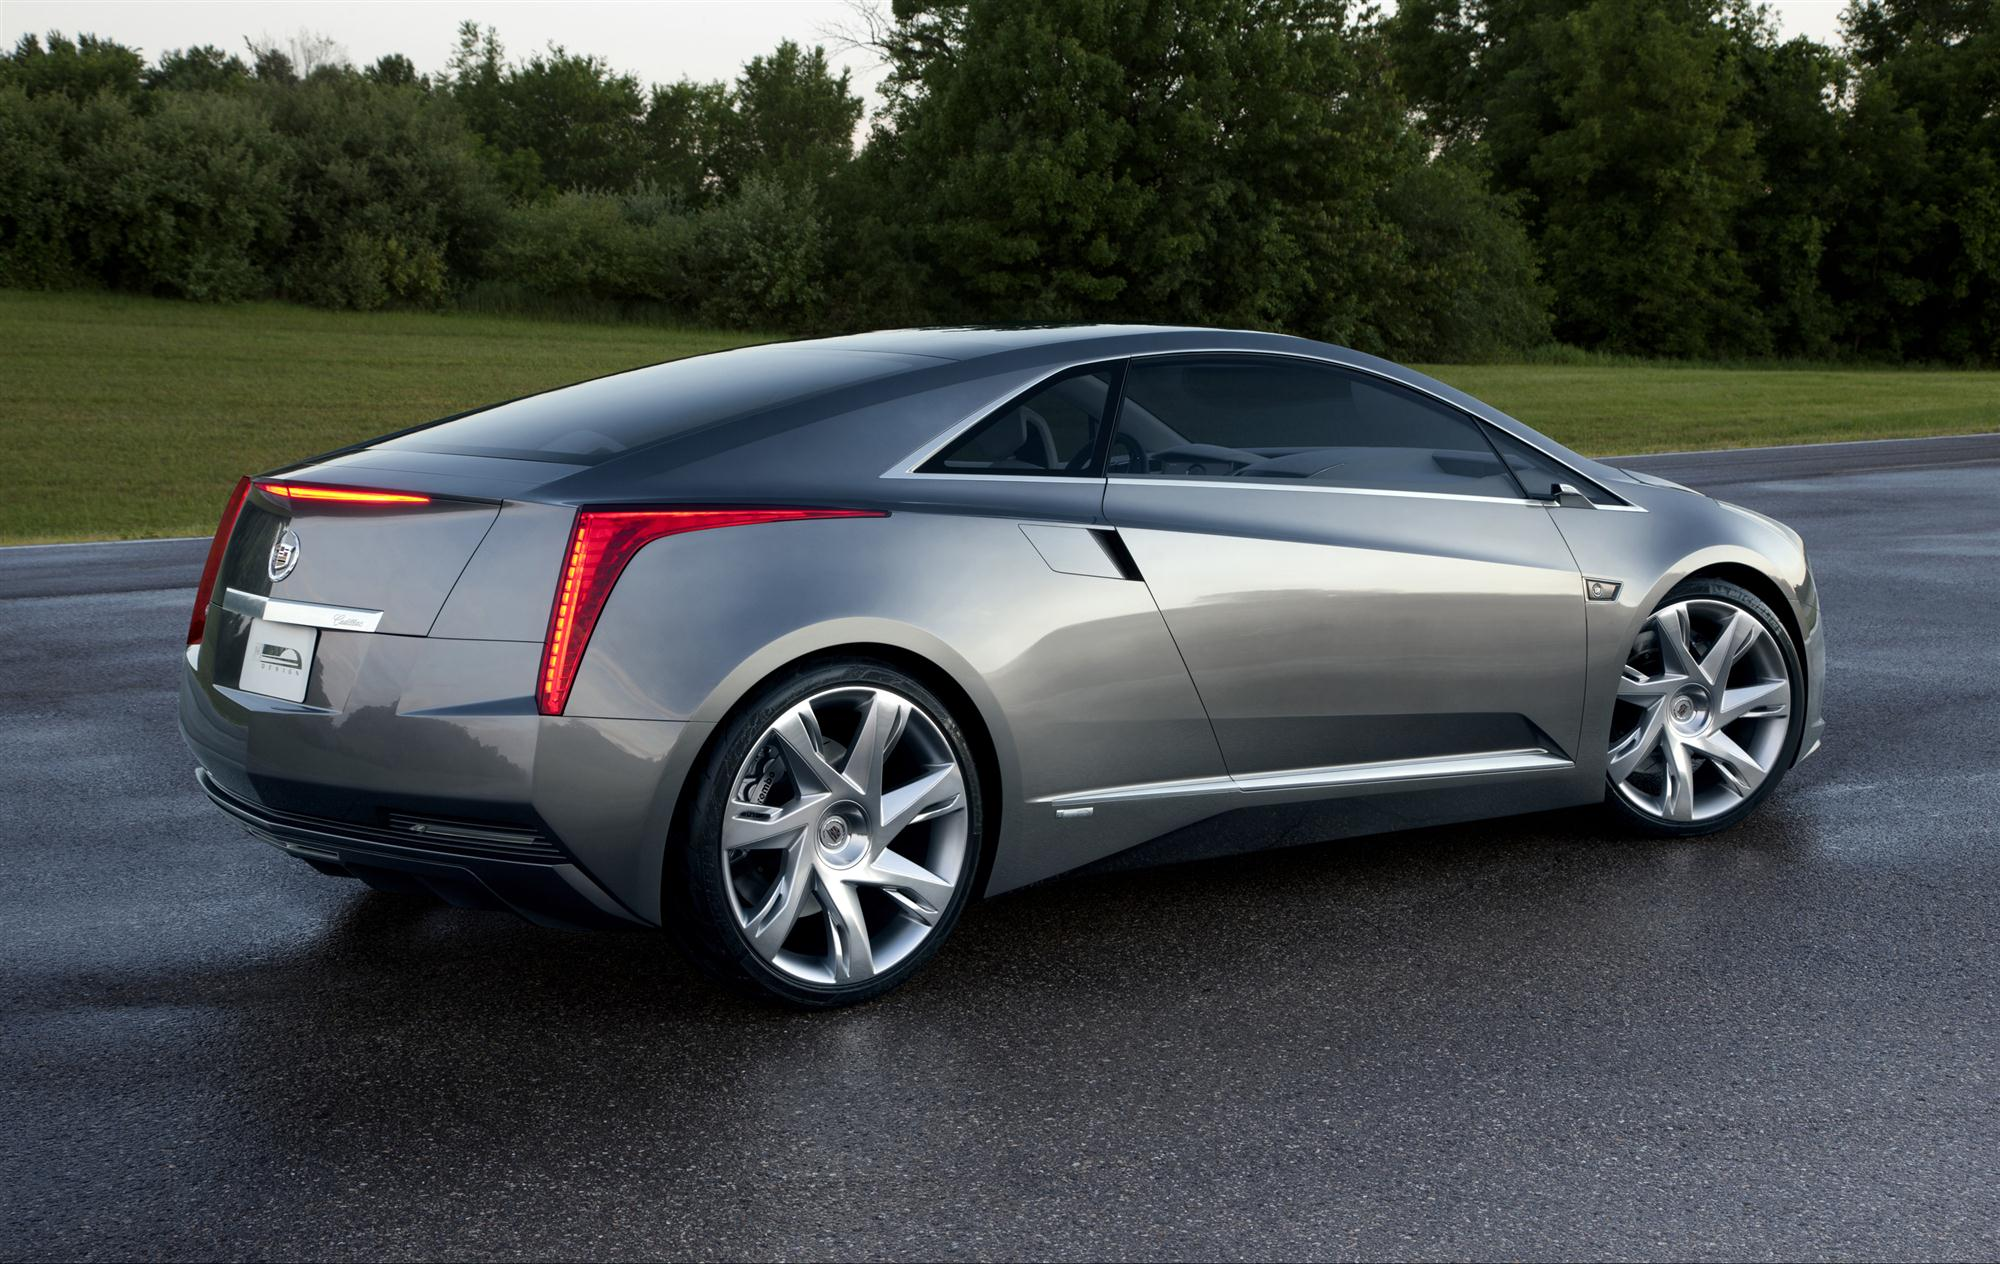 2014 Cadillac Elr Electric Car Will Be Built Next To Volt Gm Confirms